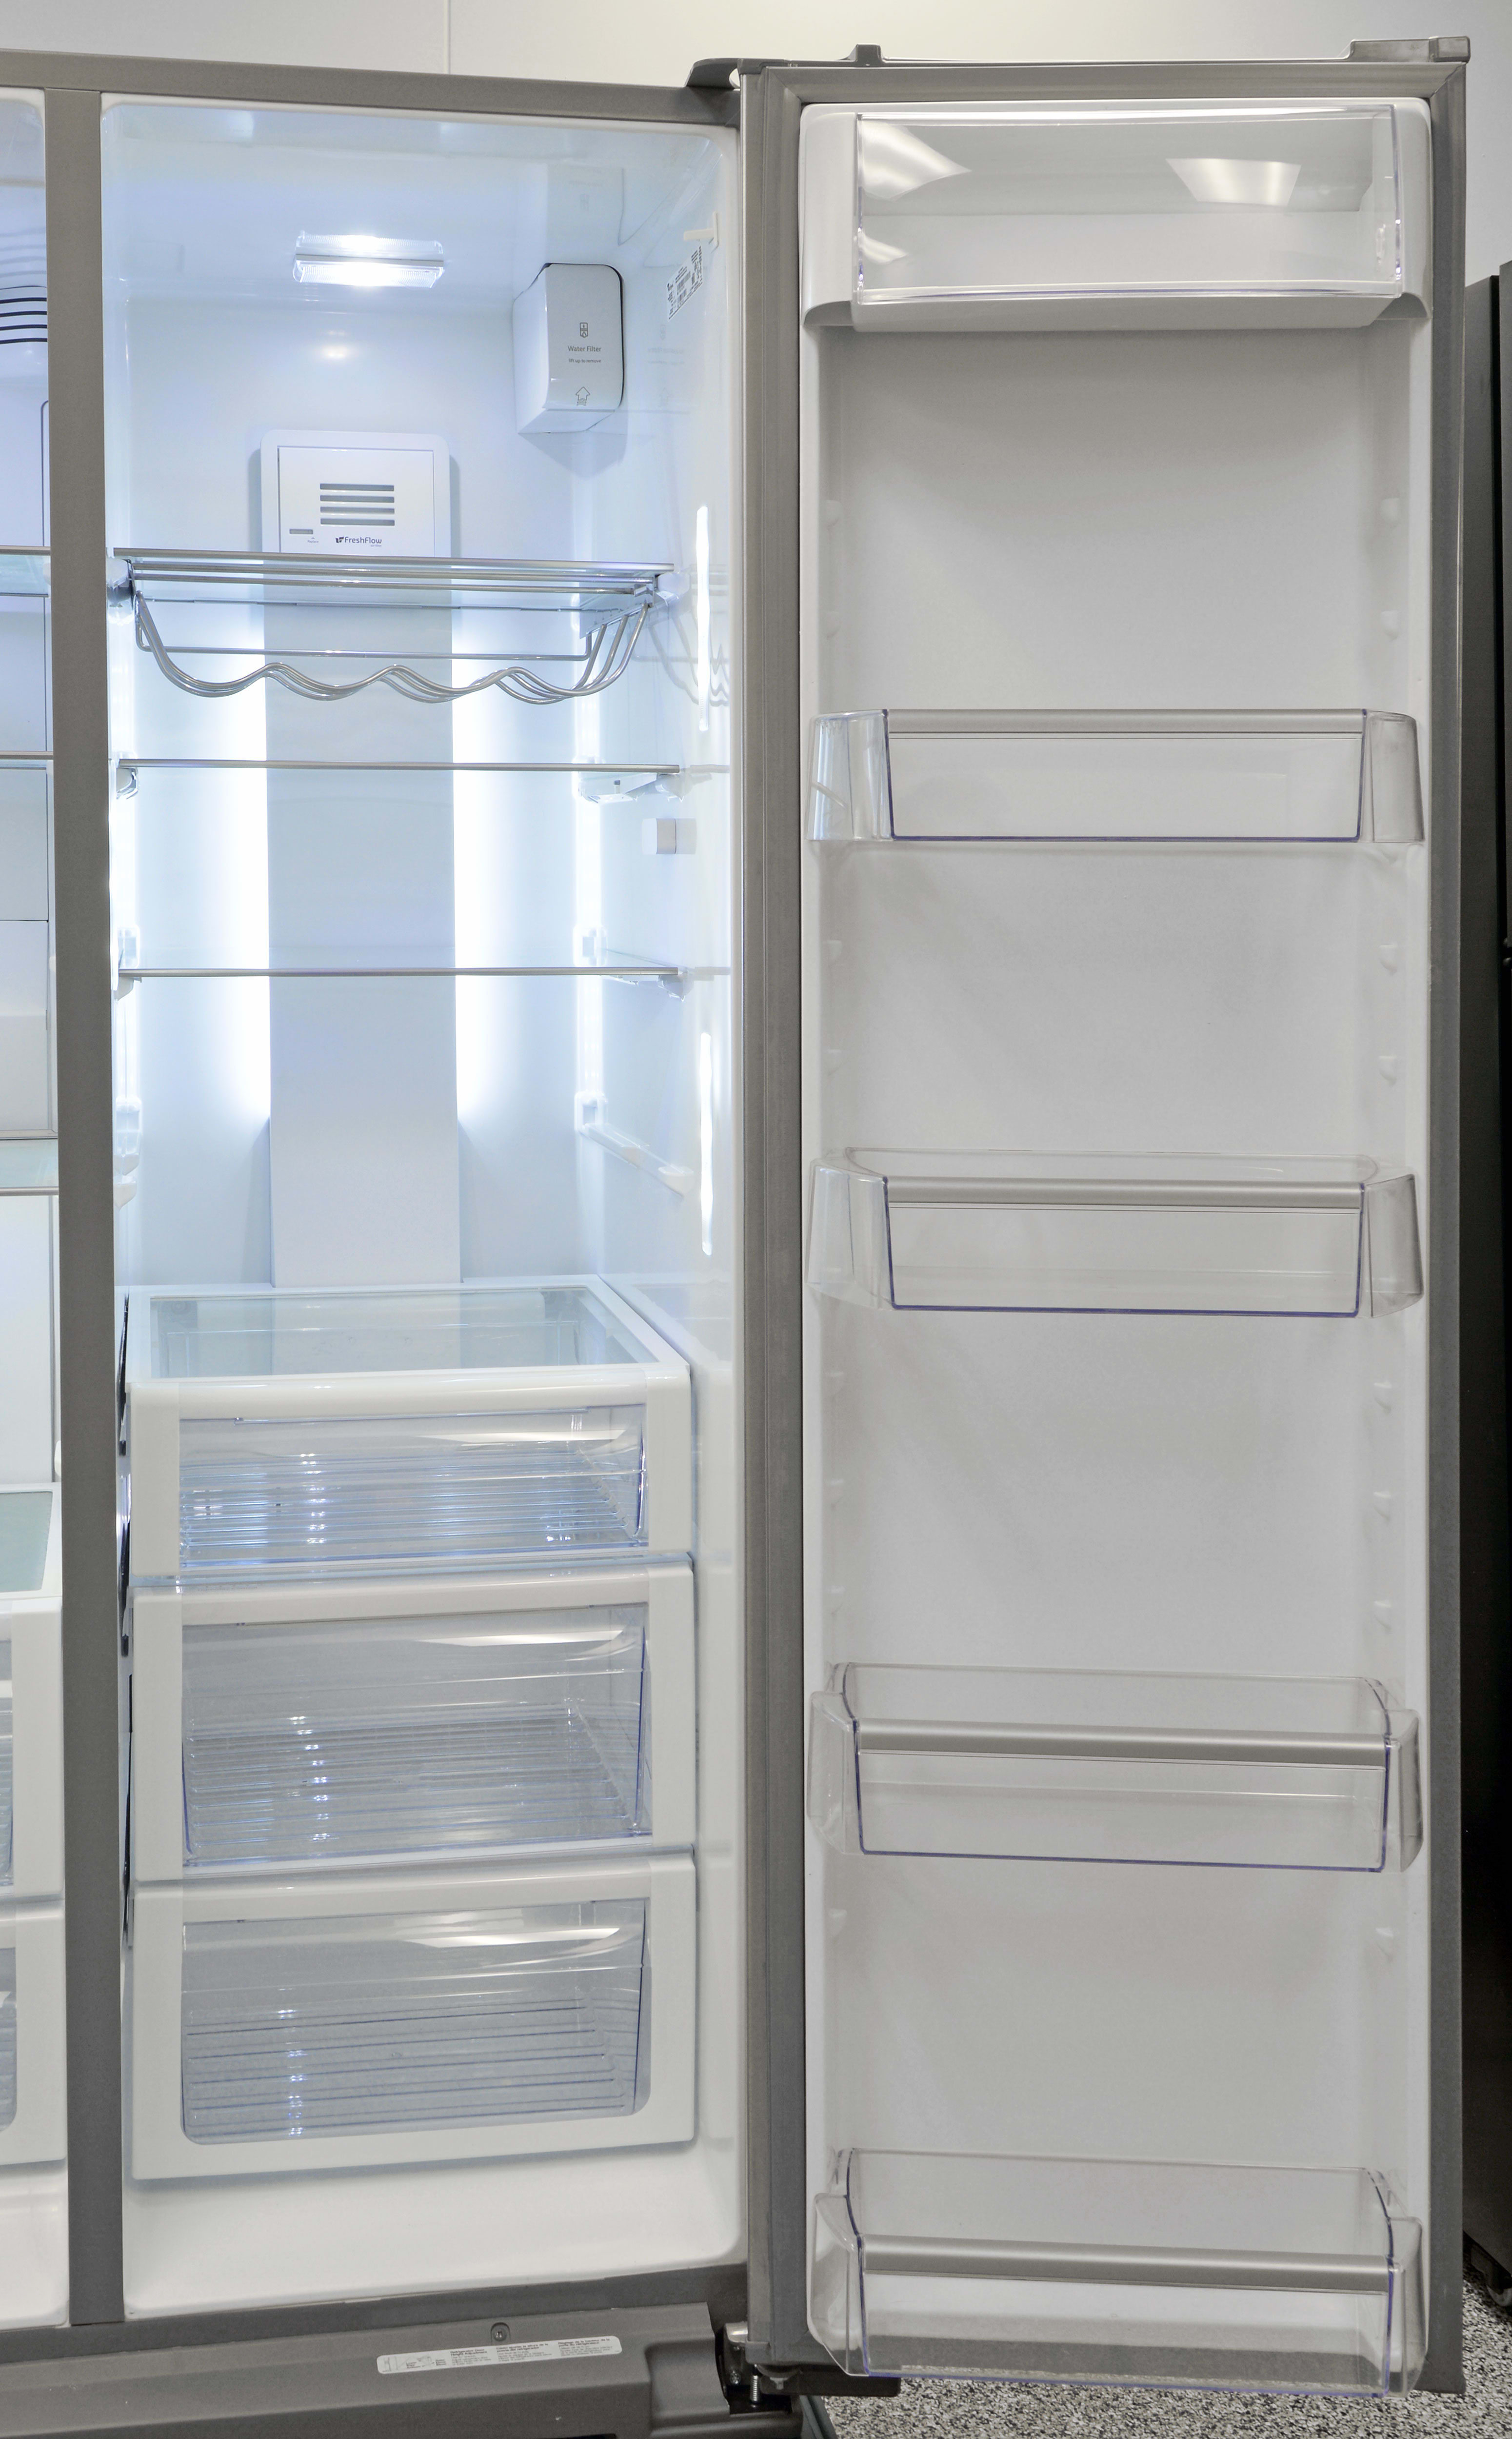 Lots of adjustable shelves allow you to compose the Whirlpool WRS975SIDM's storage layout as best fits your shopping habits.